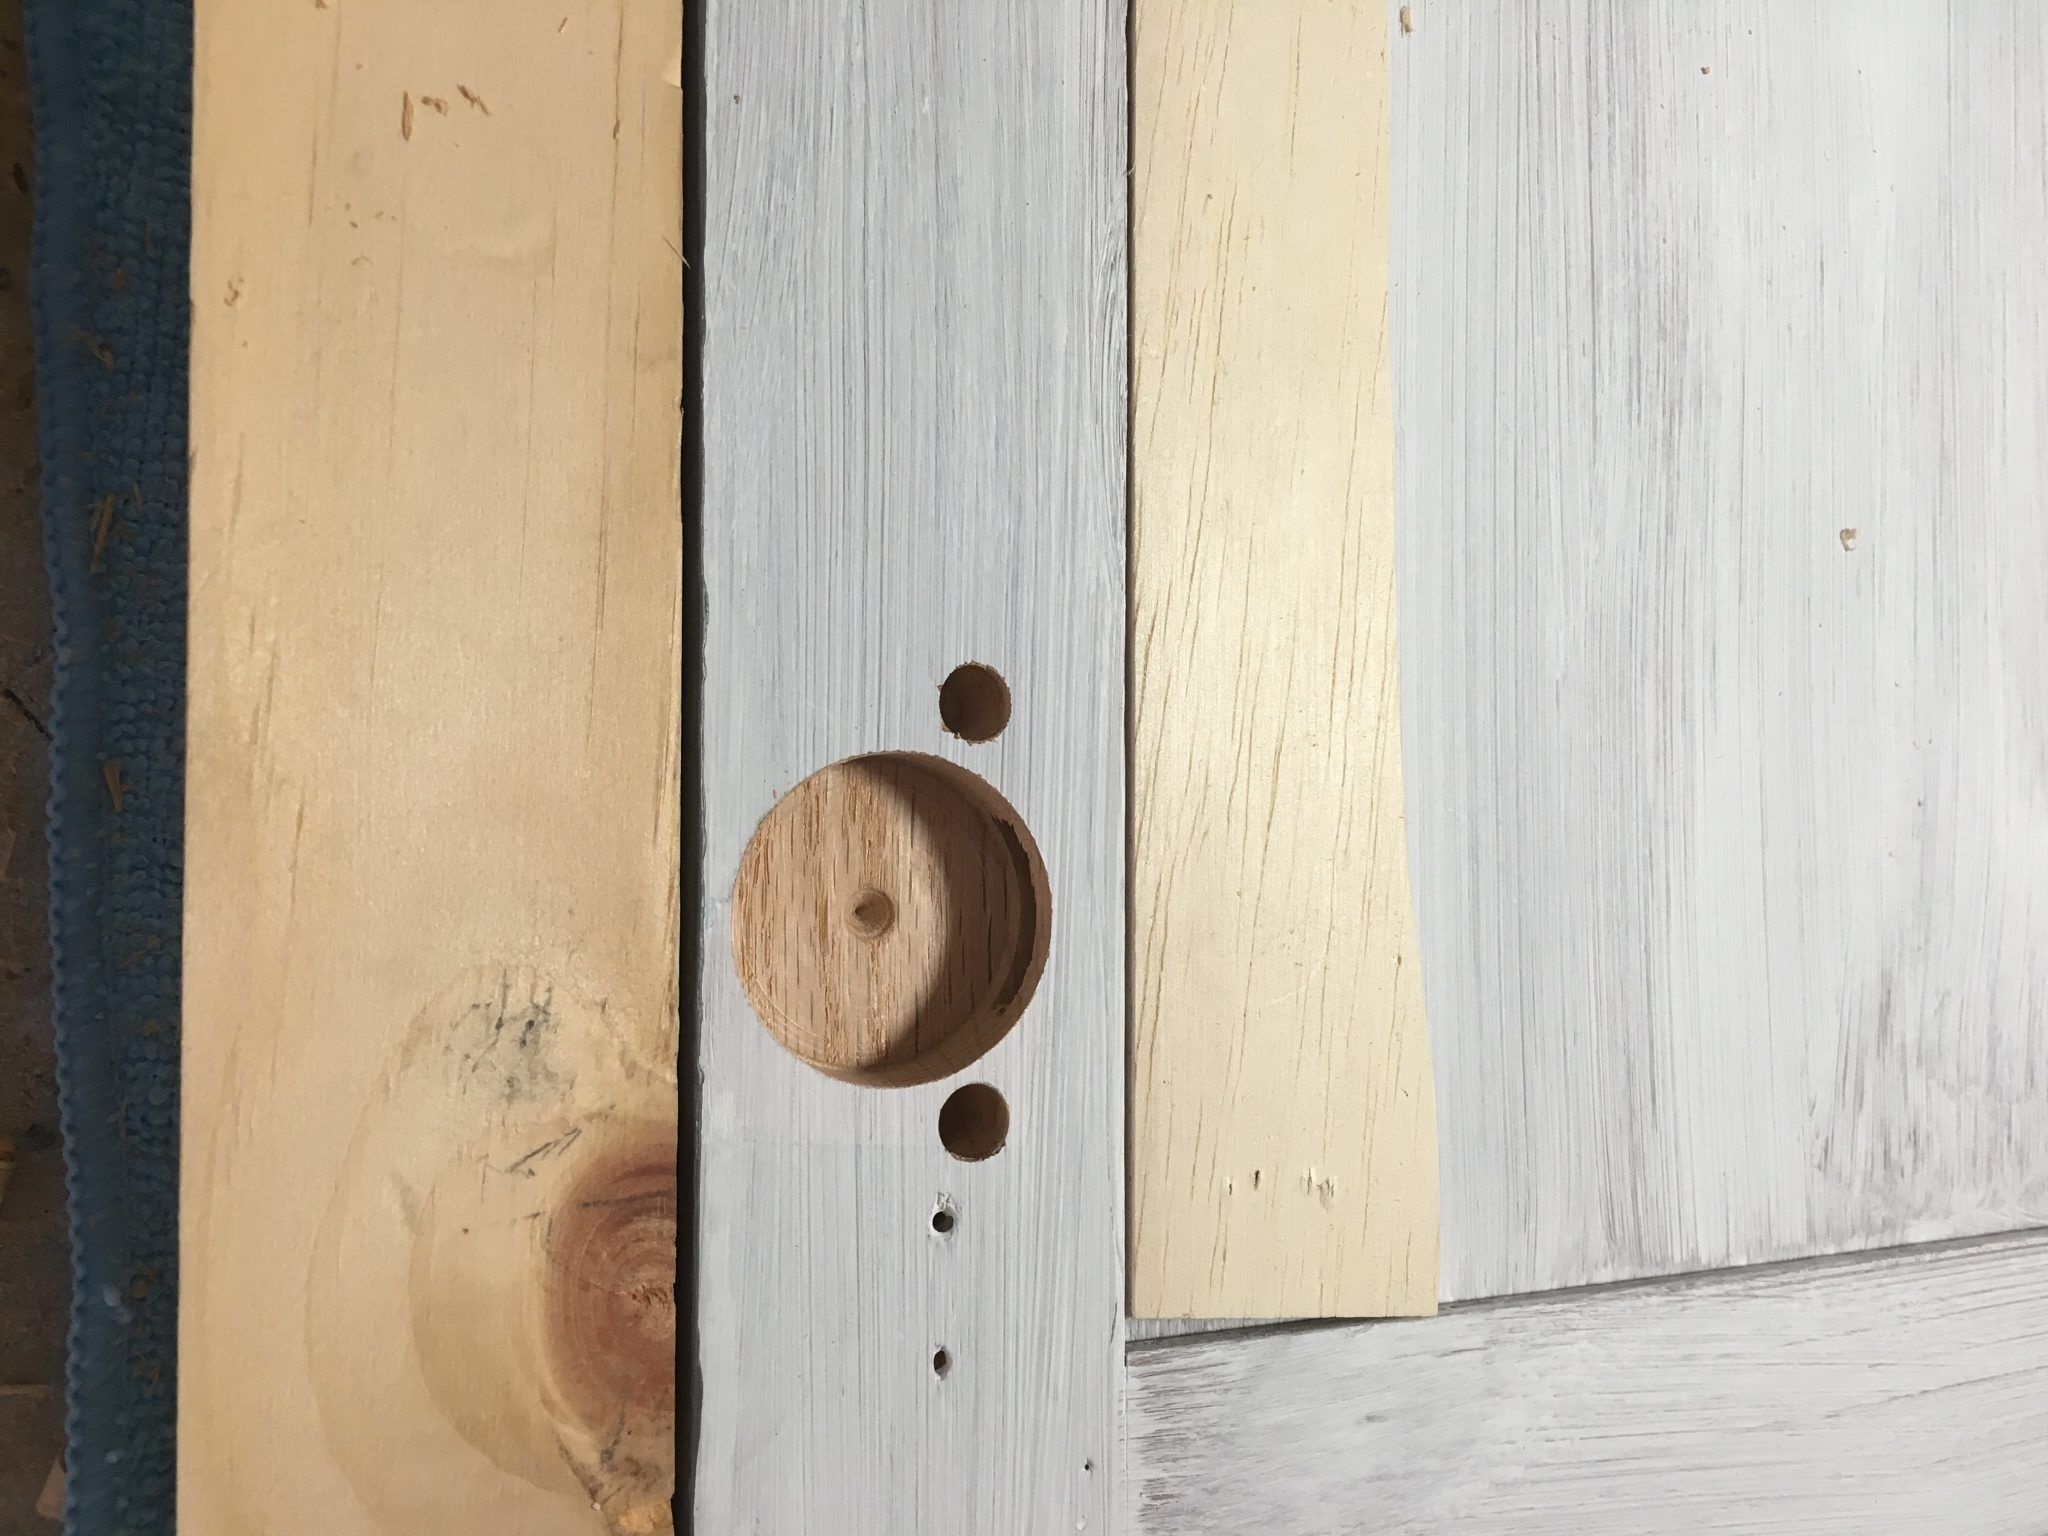 How to Easily Install Concealed Hinges on Cabinet Doors